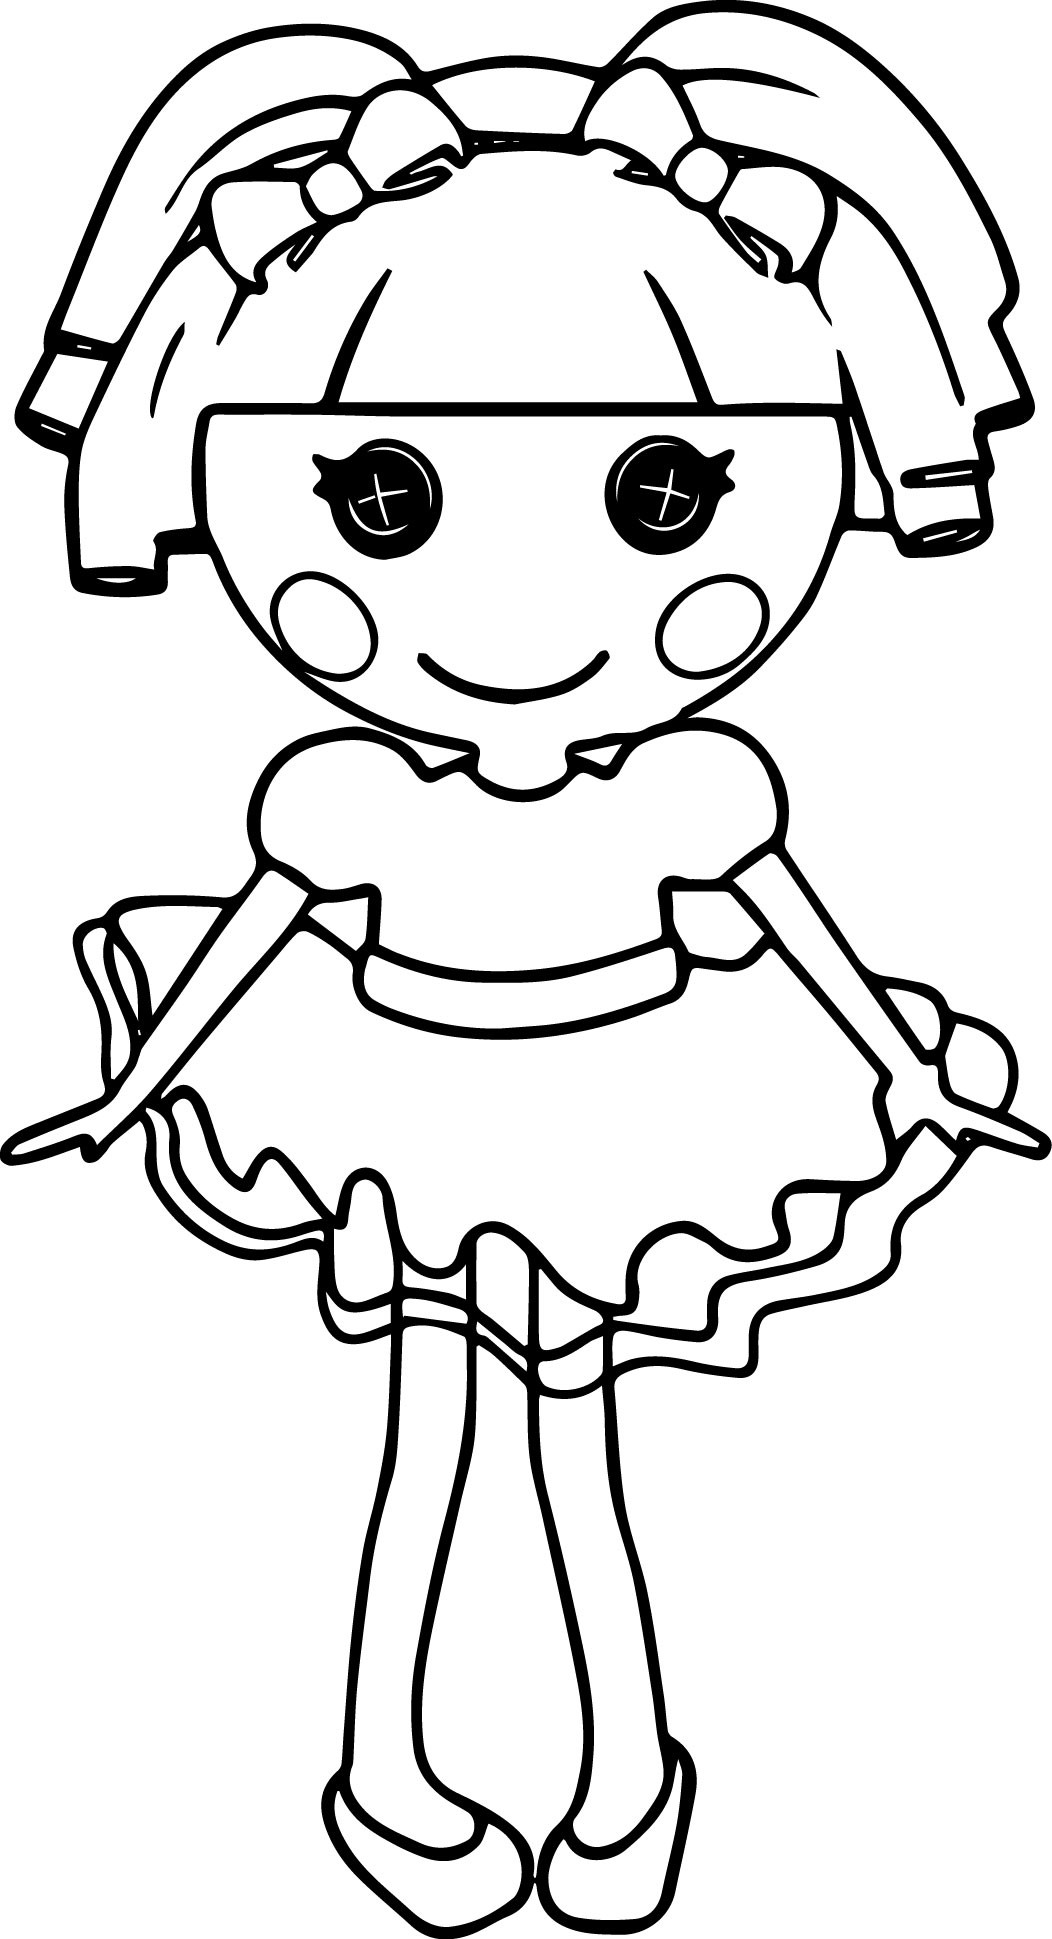 coloring pages lalaloopsy dolls the best lalaloopsy dolls coloring pages lalaloopsy pages coloring dolls